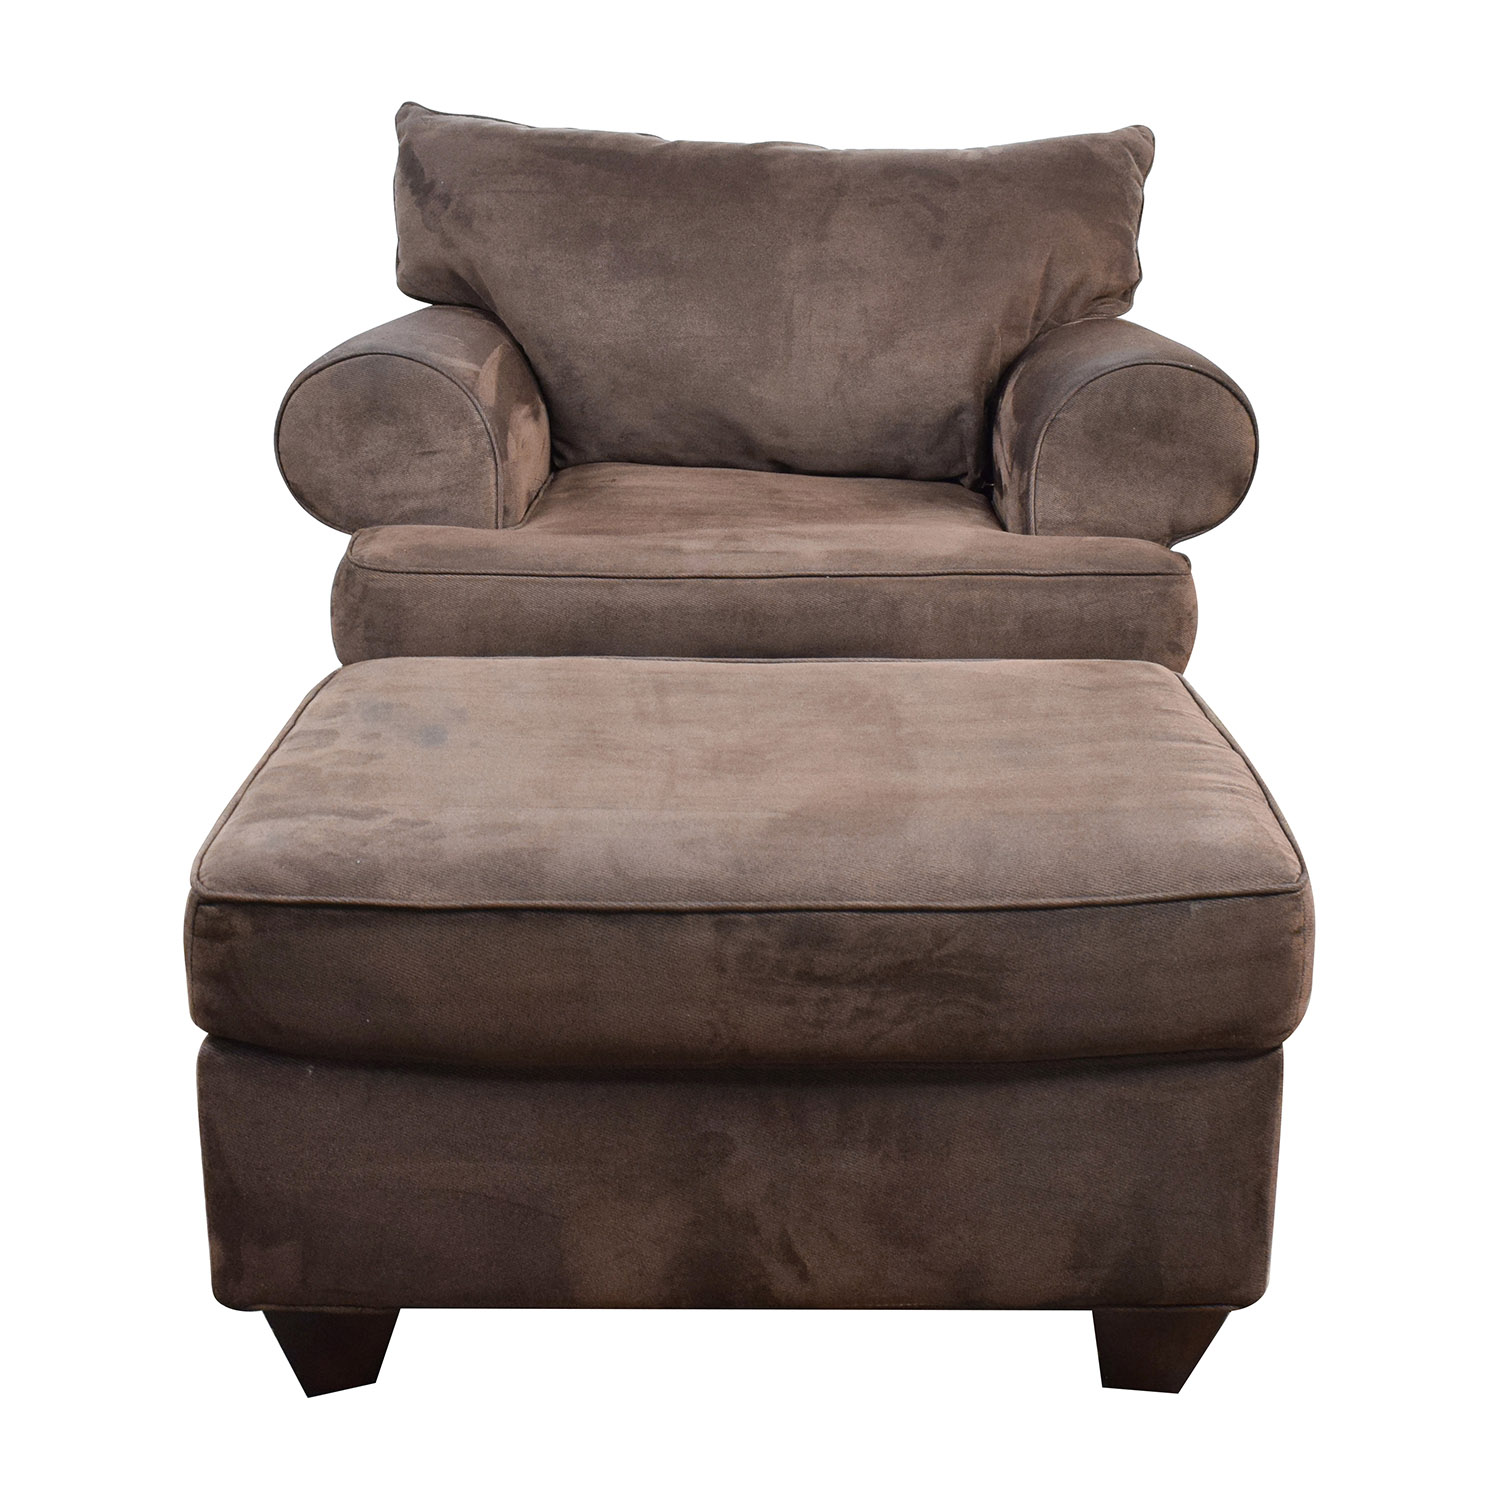 Chairs With Ottomans 67 Off Dark Brown Sofa Chair With Ottoman Chairs